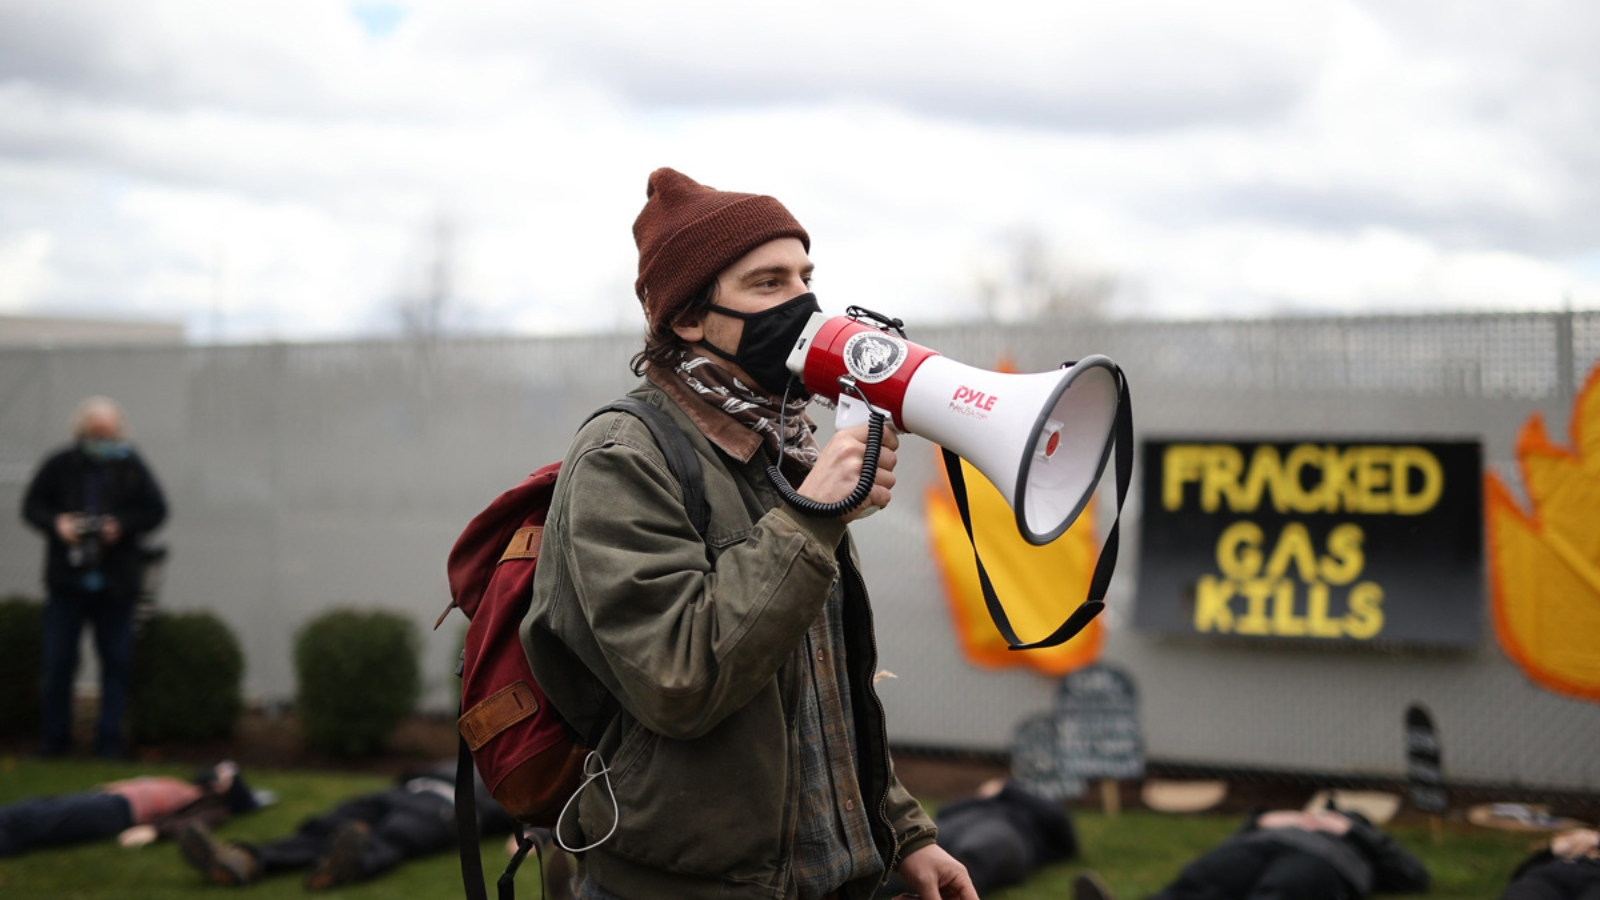 person with bullhorn